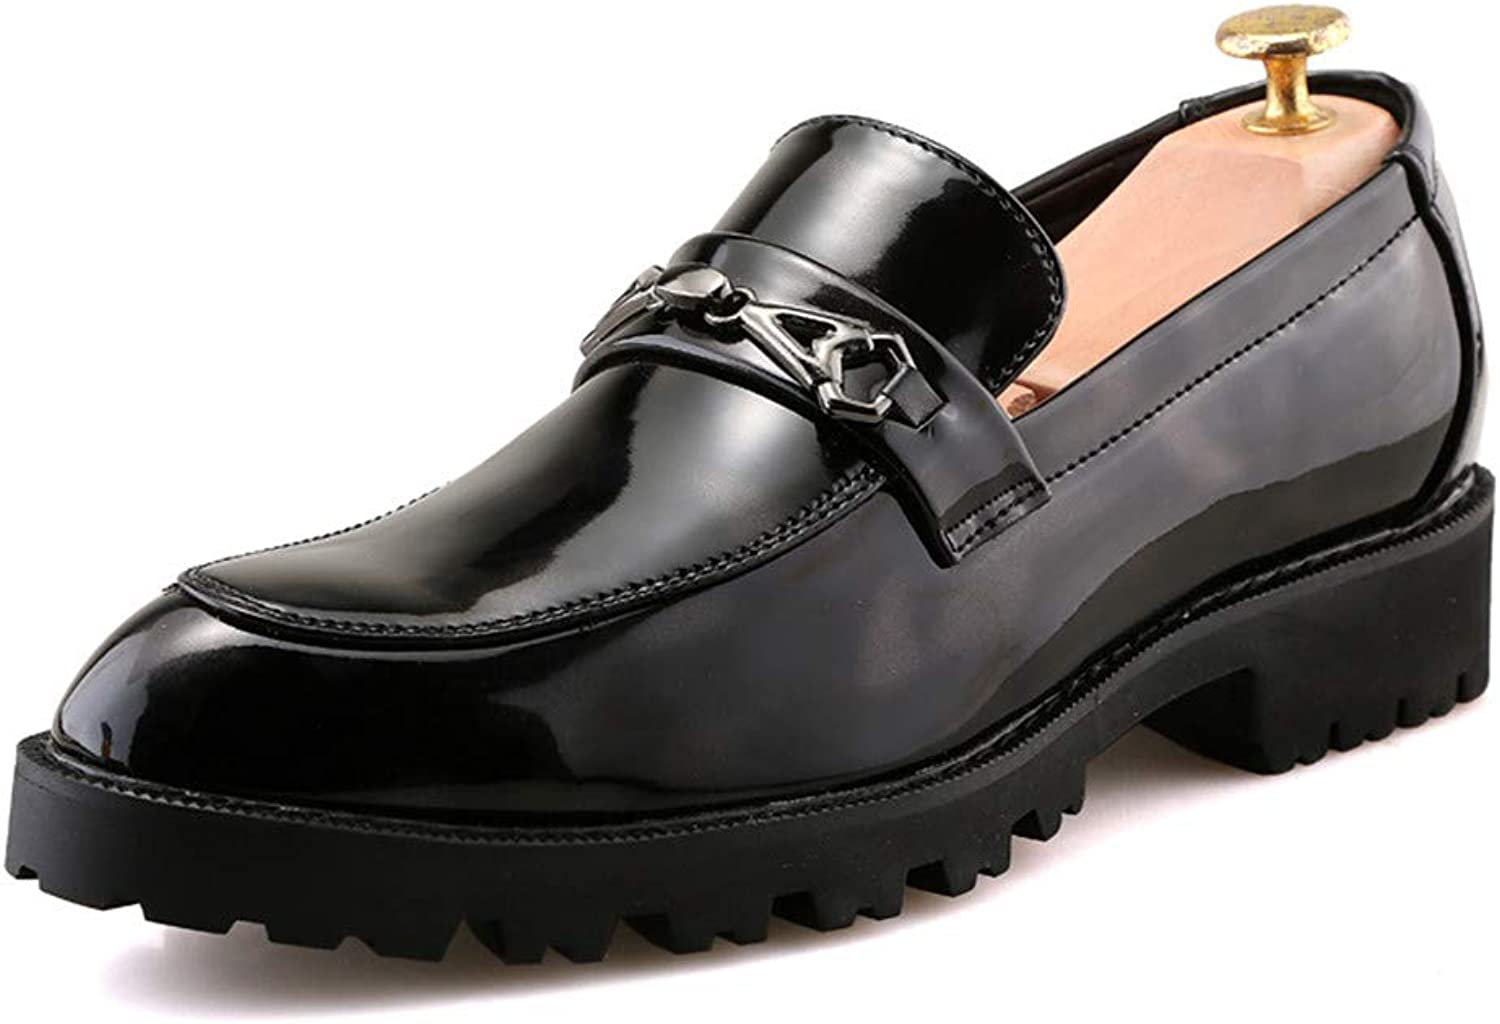 CHENXD shoes, Men's Fashion Round Toe Thick Toe Business Oxford Casual Patent Leather Formal shoes